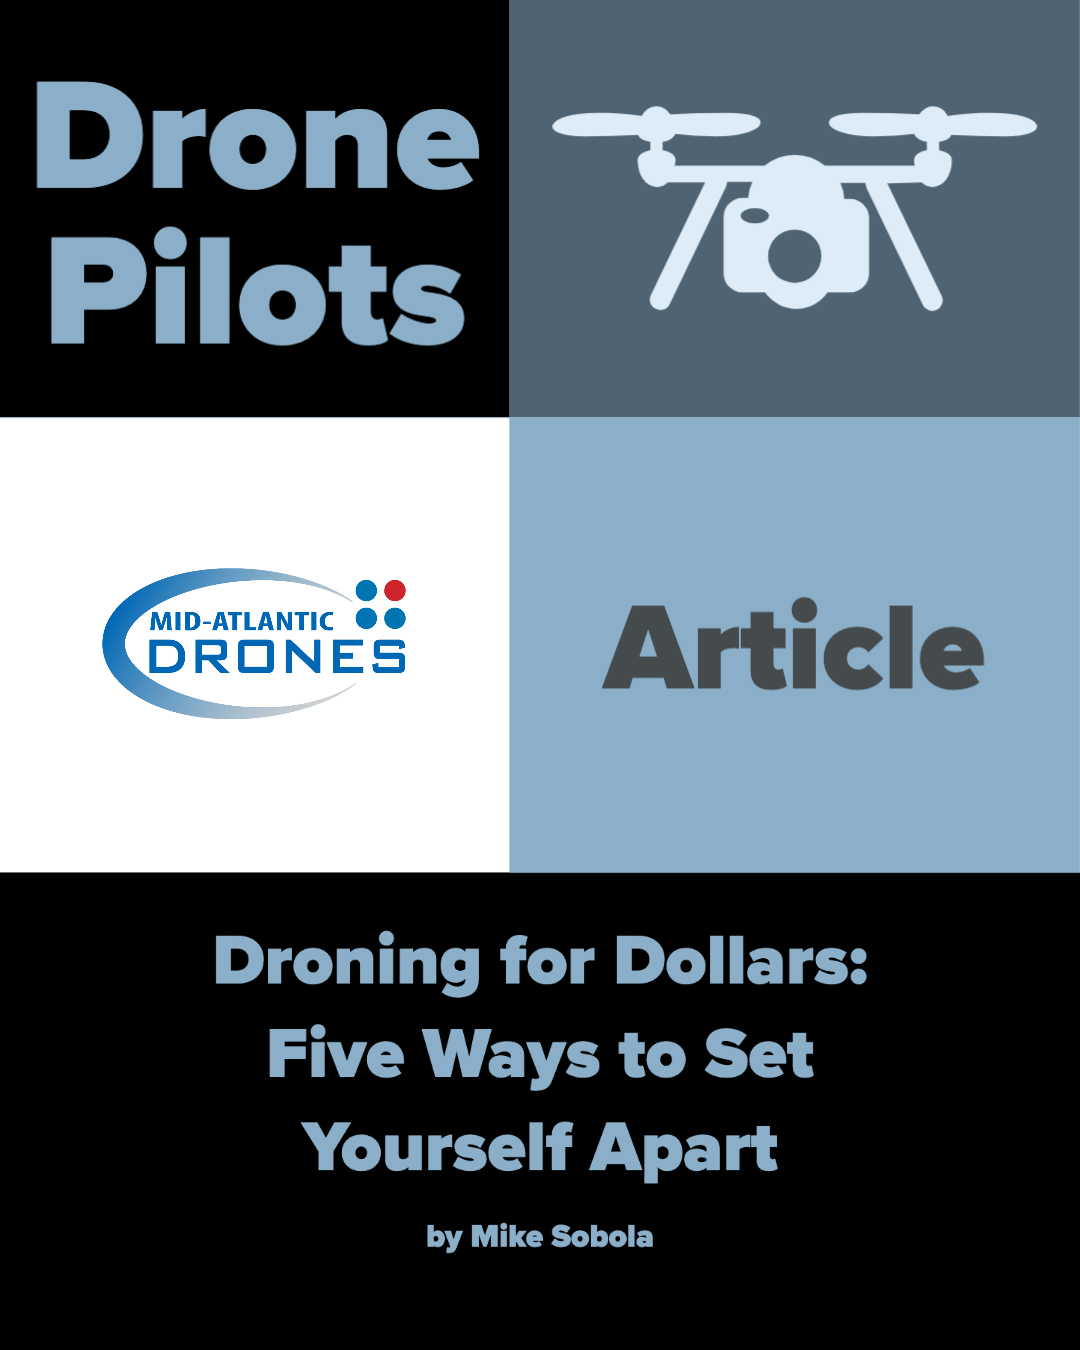 Droning for Dollars: Five Ways to Set Yourself Apart